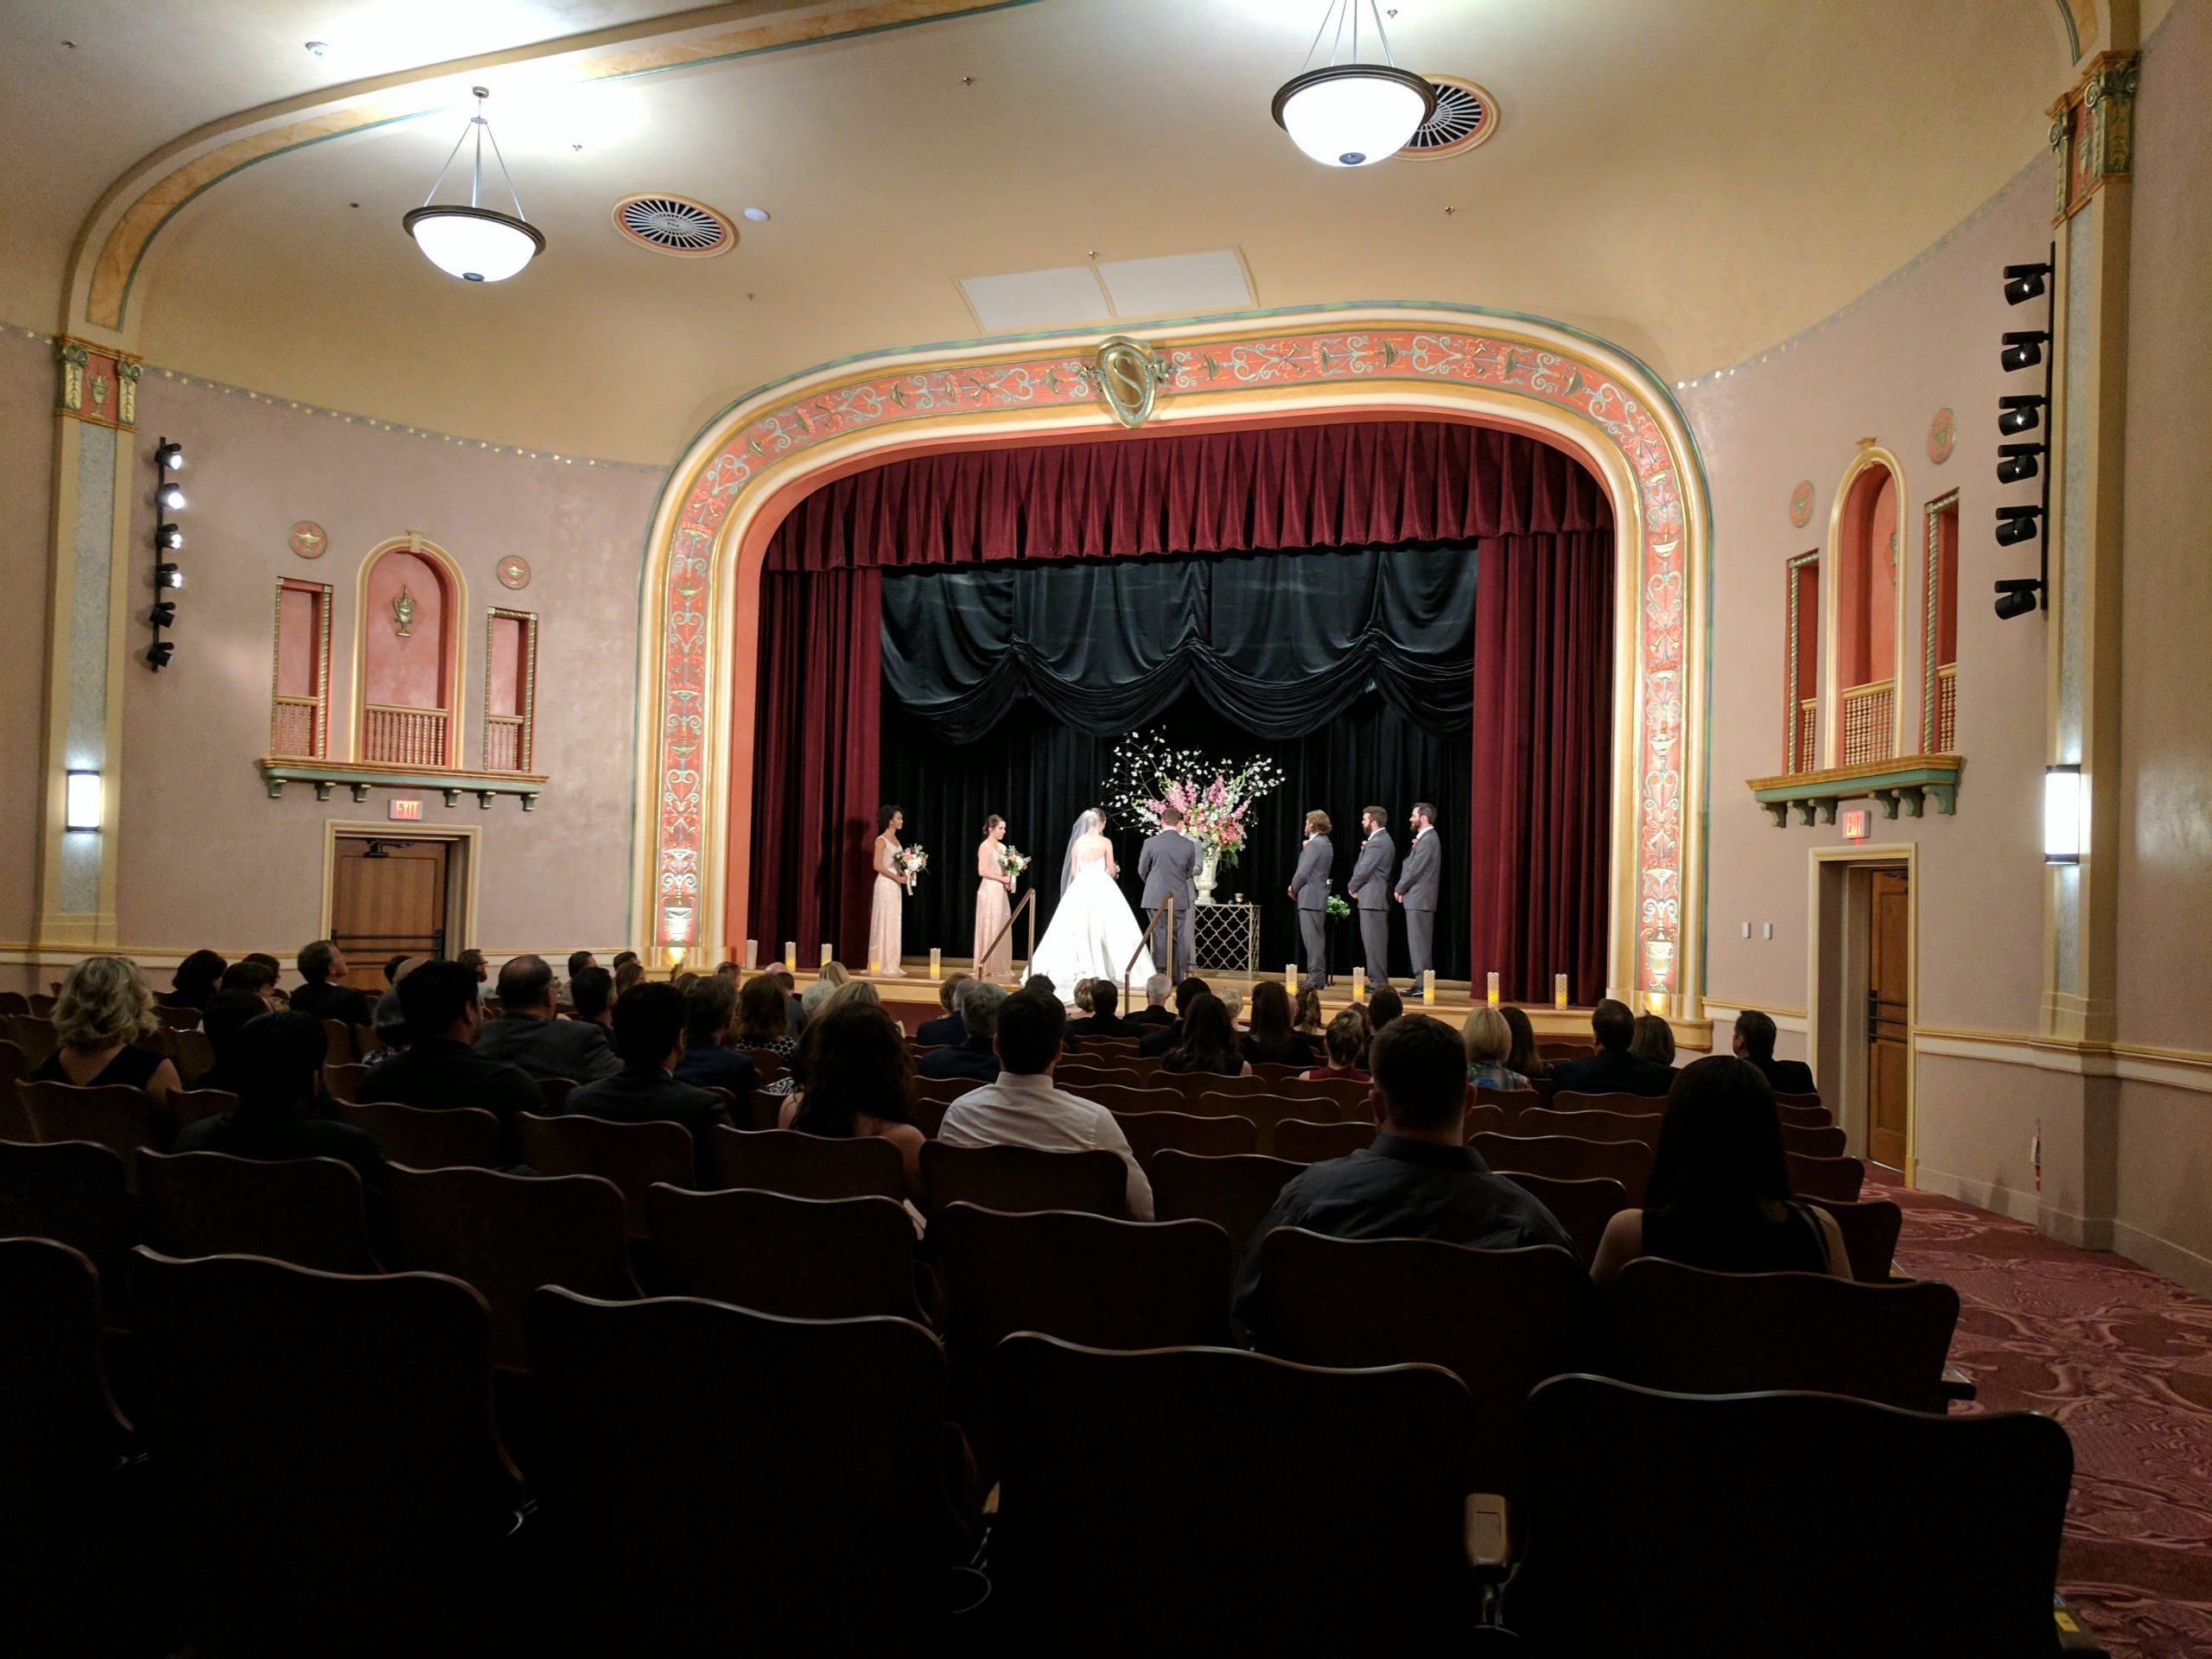 A wedding party stands on the stage of the Hasskarl Auditorium during their wedding ceremony.